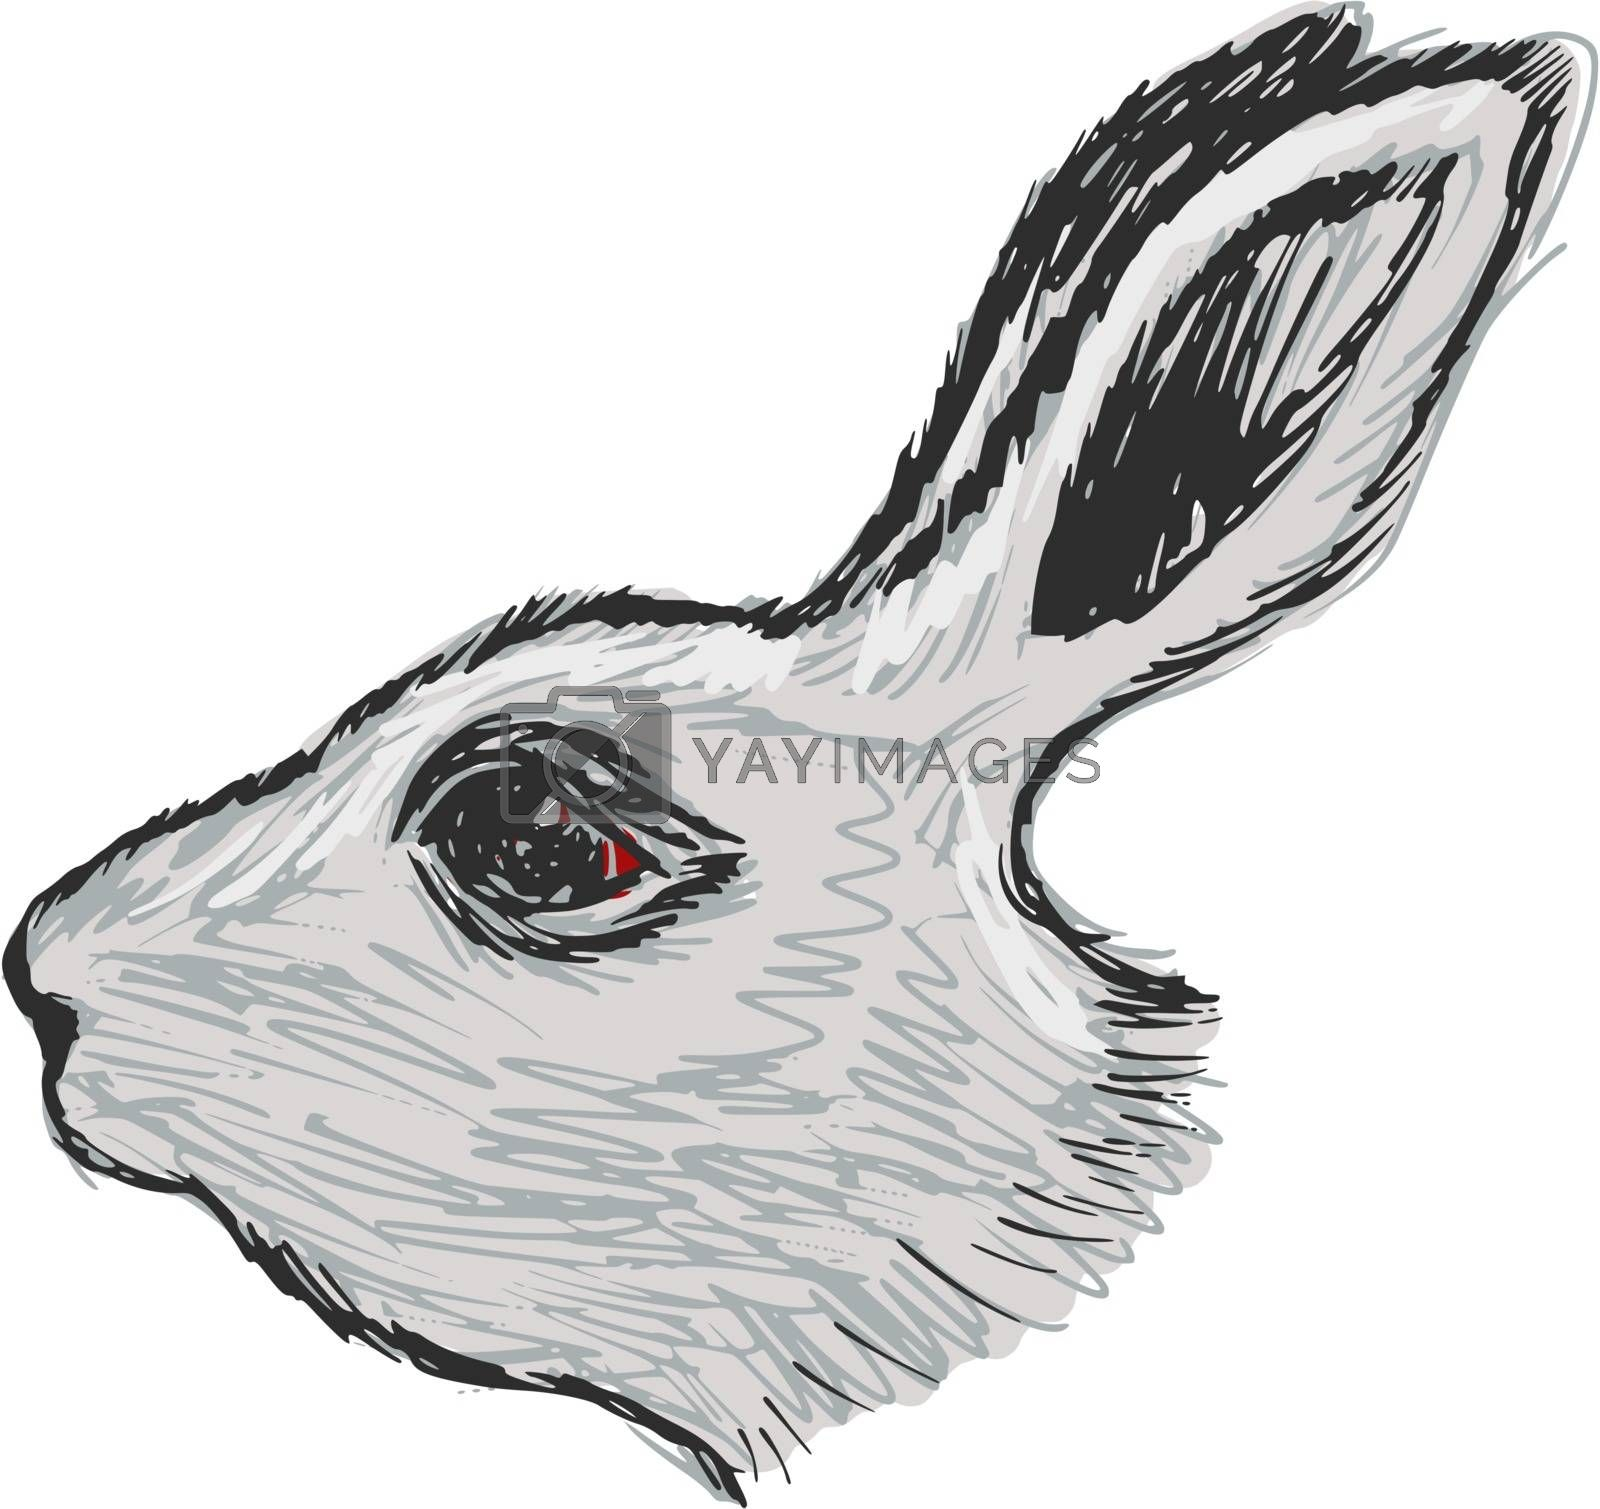 Royalty free image of head of rabbit by Perysty